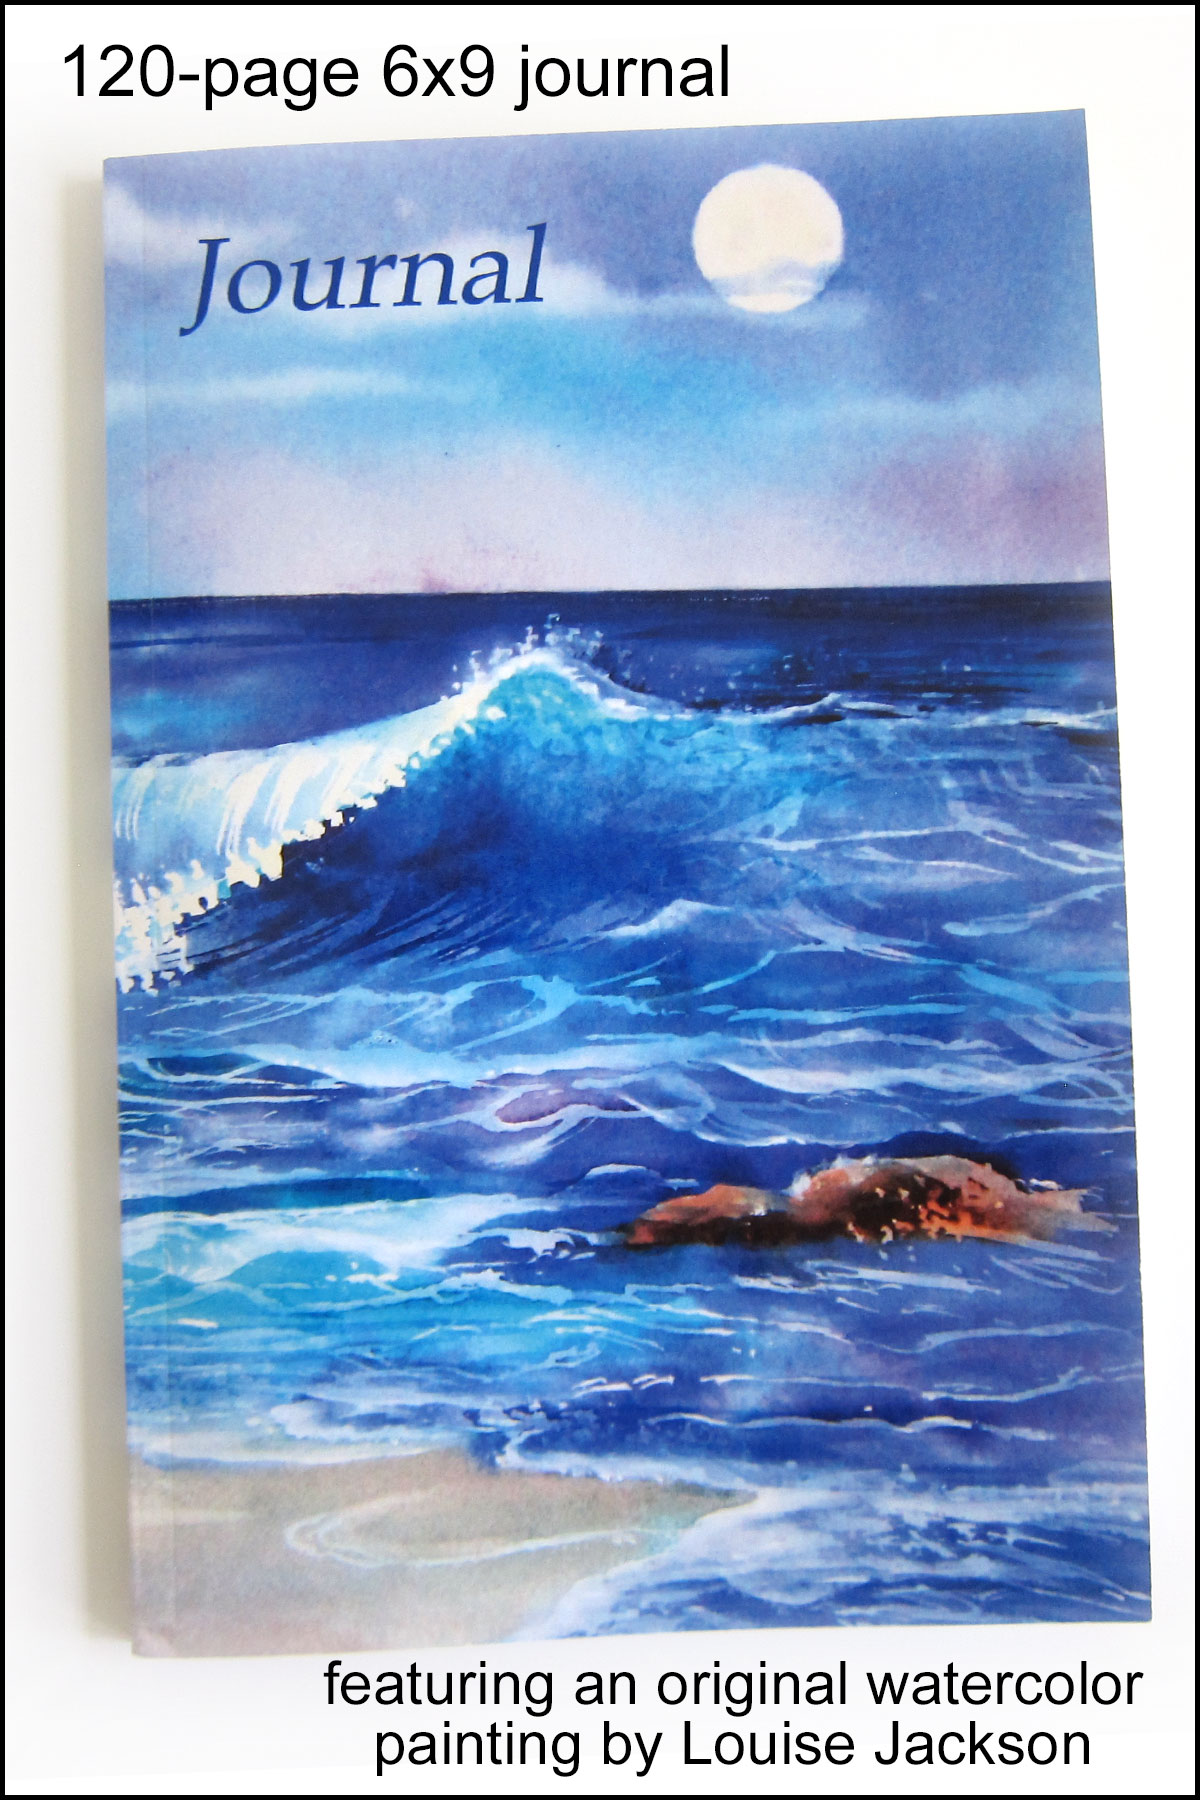 Moon over the Ocean watercolor painting on the cover of a 120-page 6x9 journal.